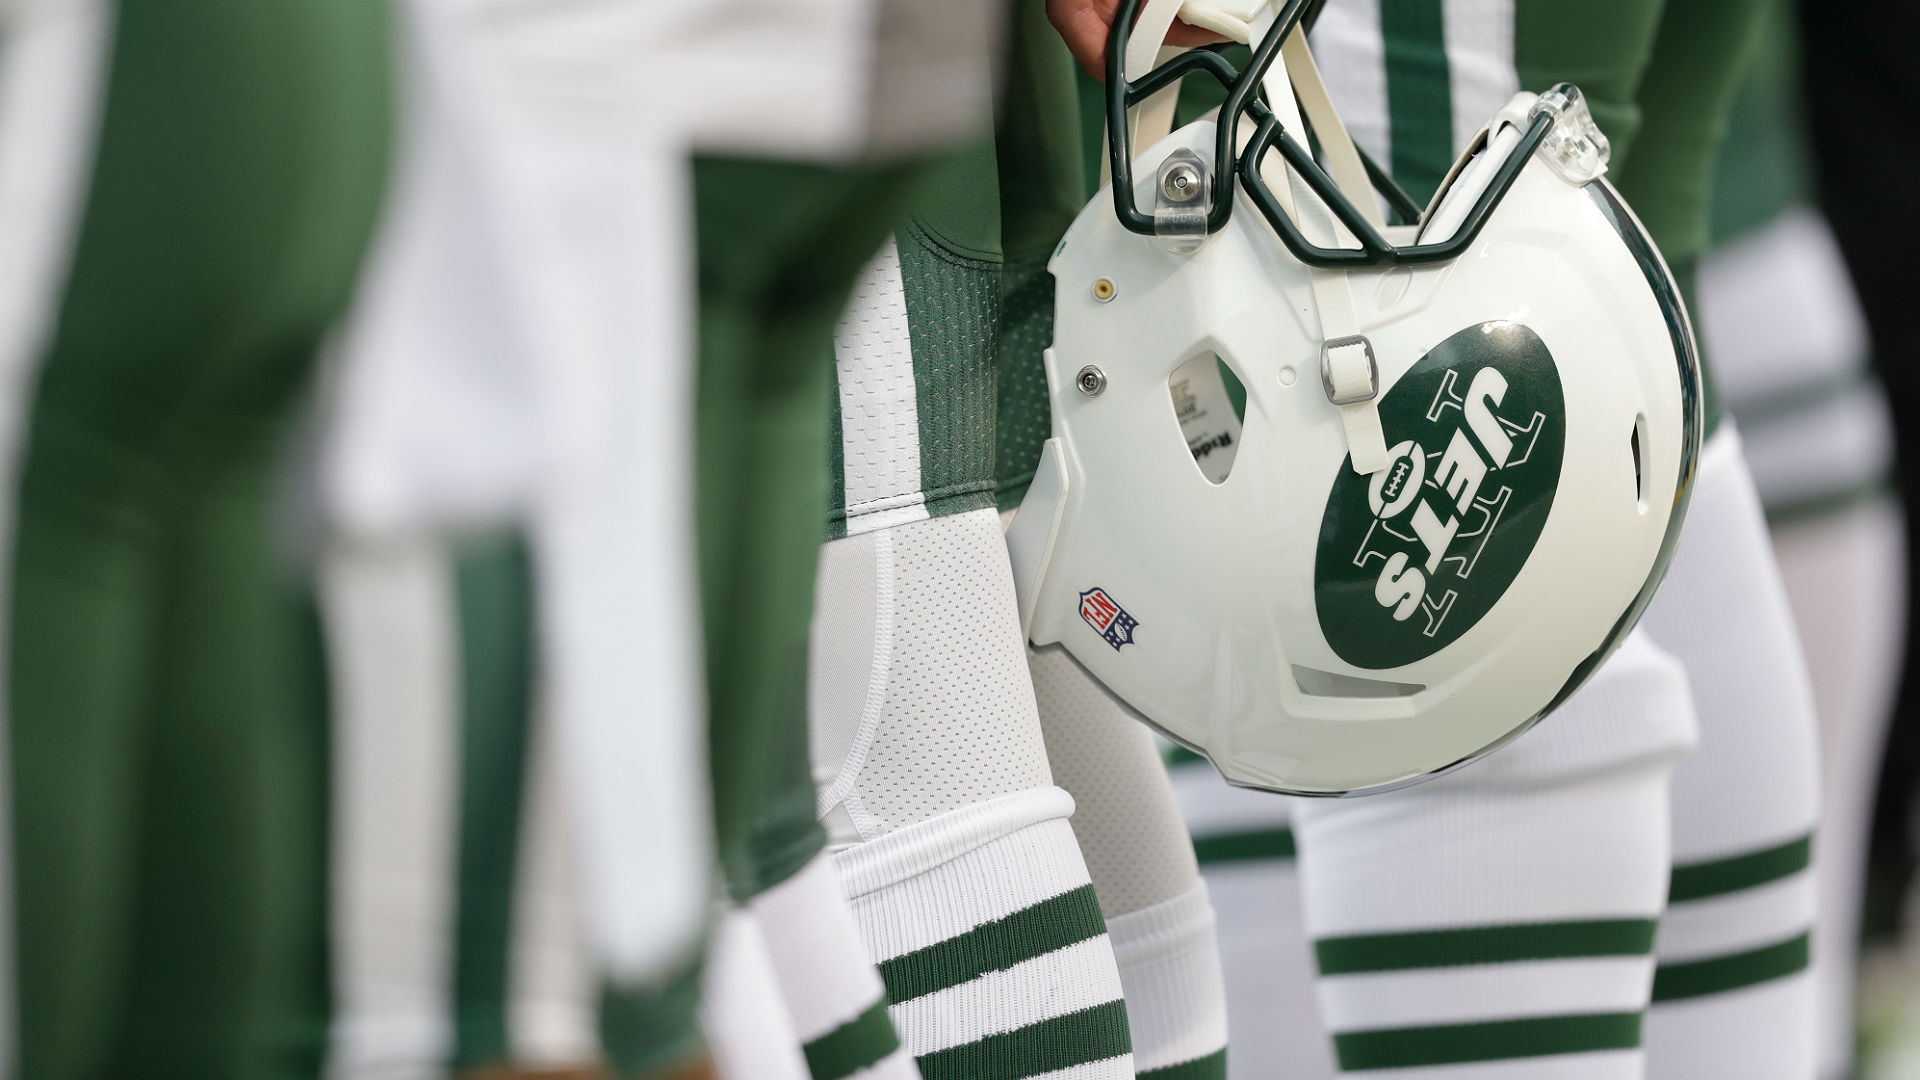 Jets' Darnold shoulders blame, played 'stupid football'